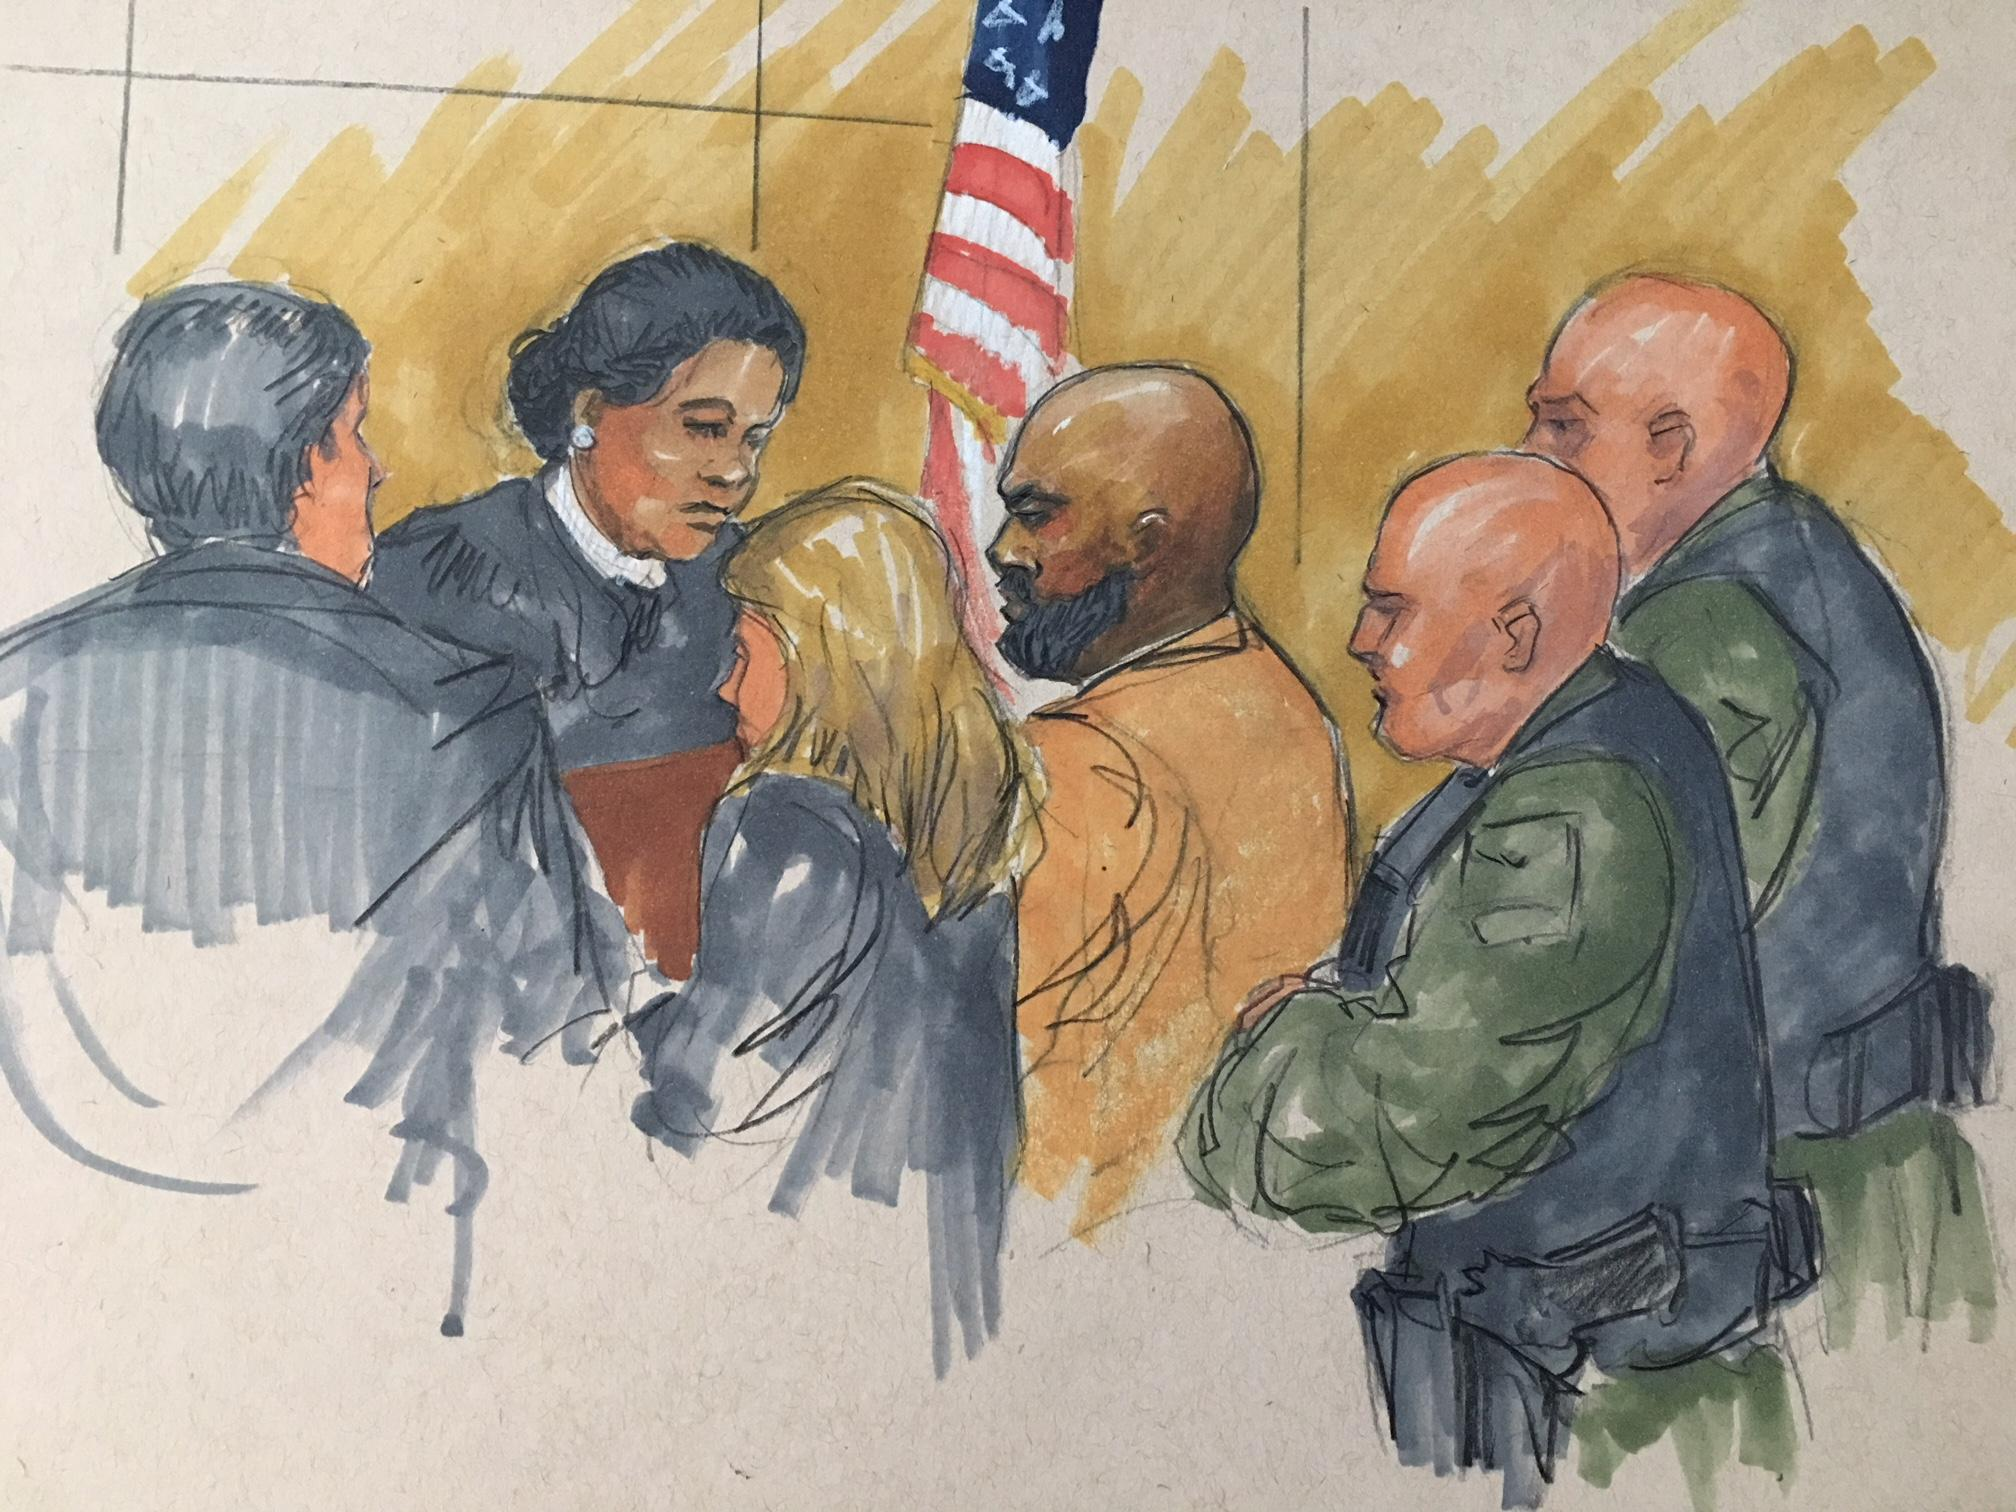 Shomari Legghette, center, appears before Cook County Judge Erica Reddick at the Leighton Criminal Court Building on Monday, March 12. (Courtroom sketch by Thomas Gianni)